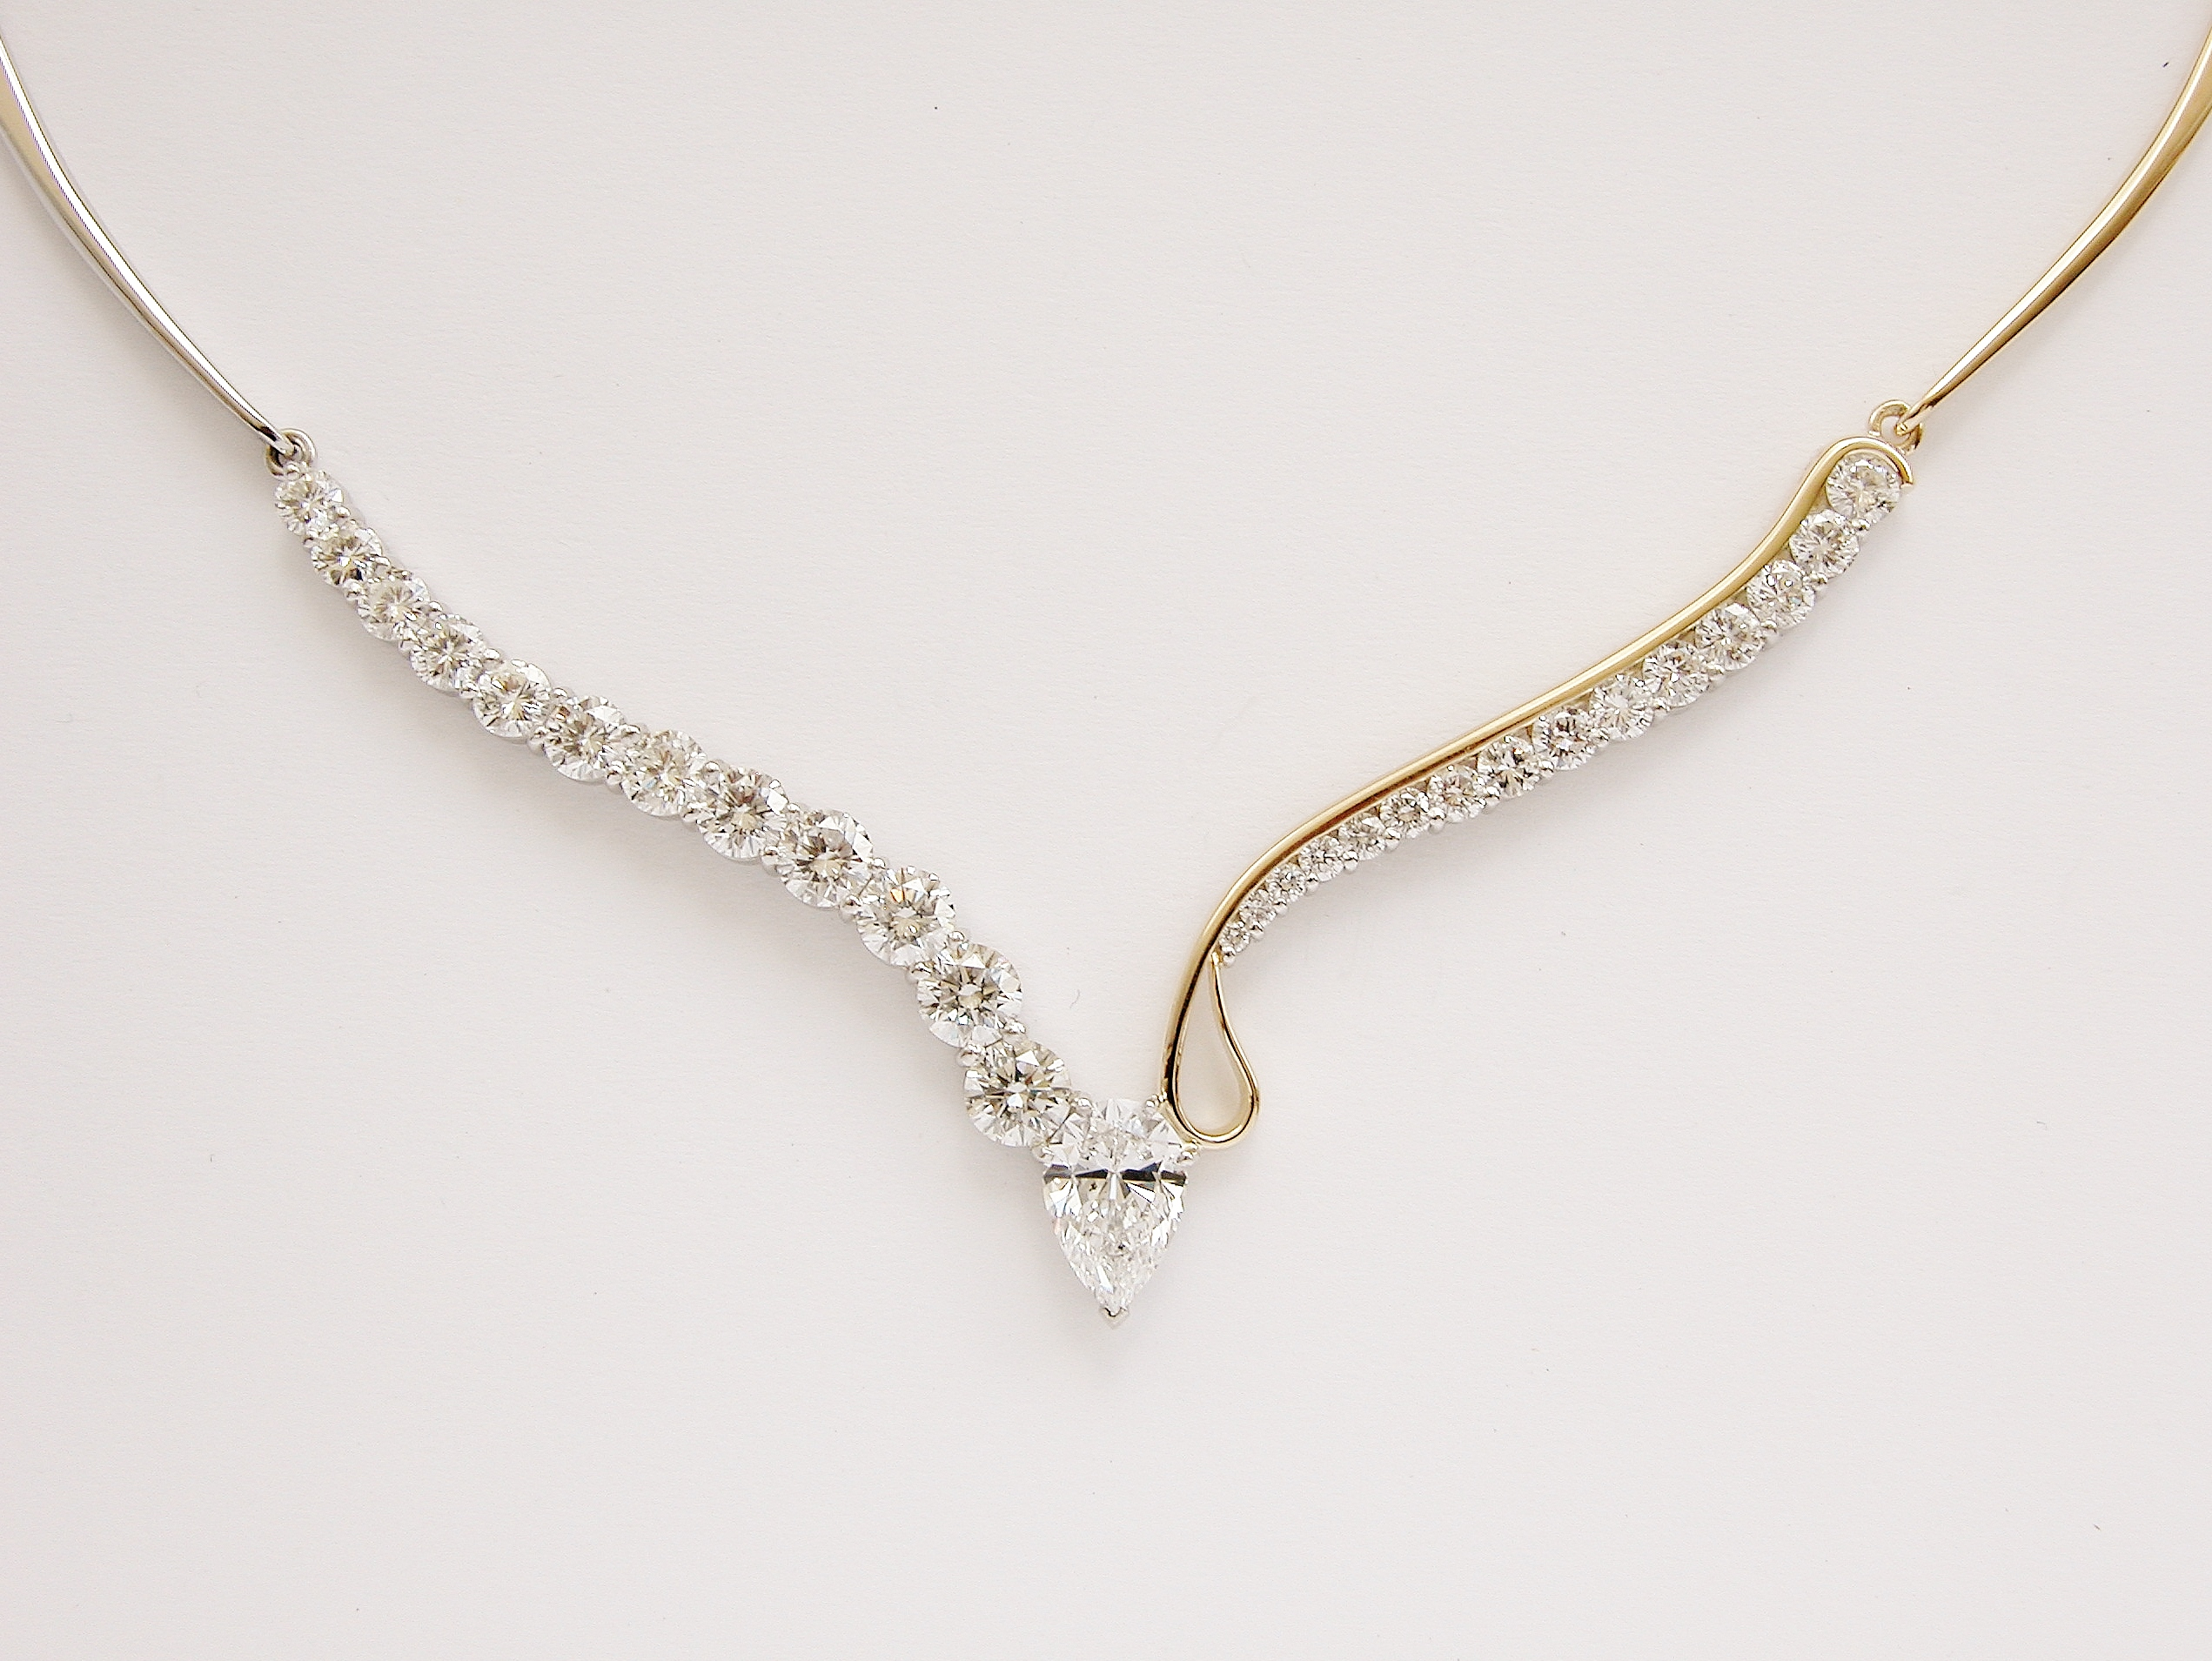 Bespoke Single Pear shaped diamond & 27 stone roundbrilliant cut diamond necklace mounted in platinum &18ct.yellow gold with individually hand crafted links.